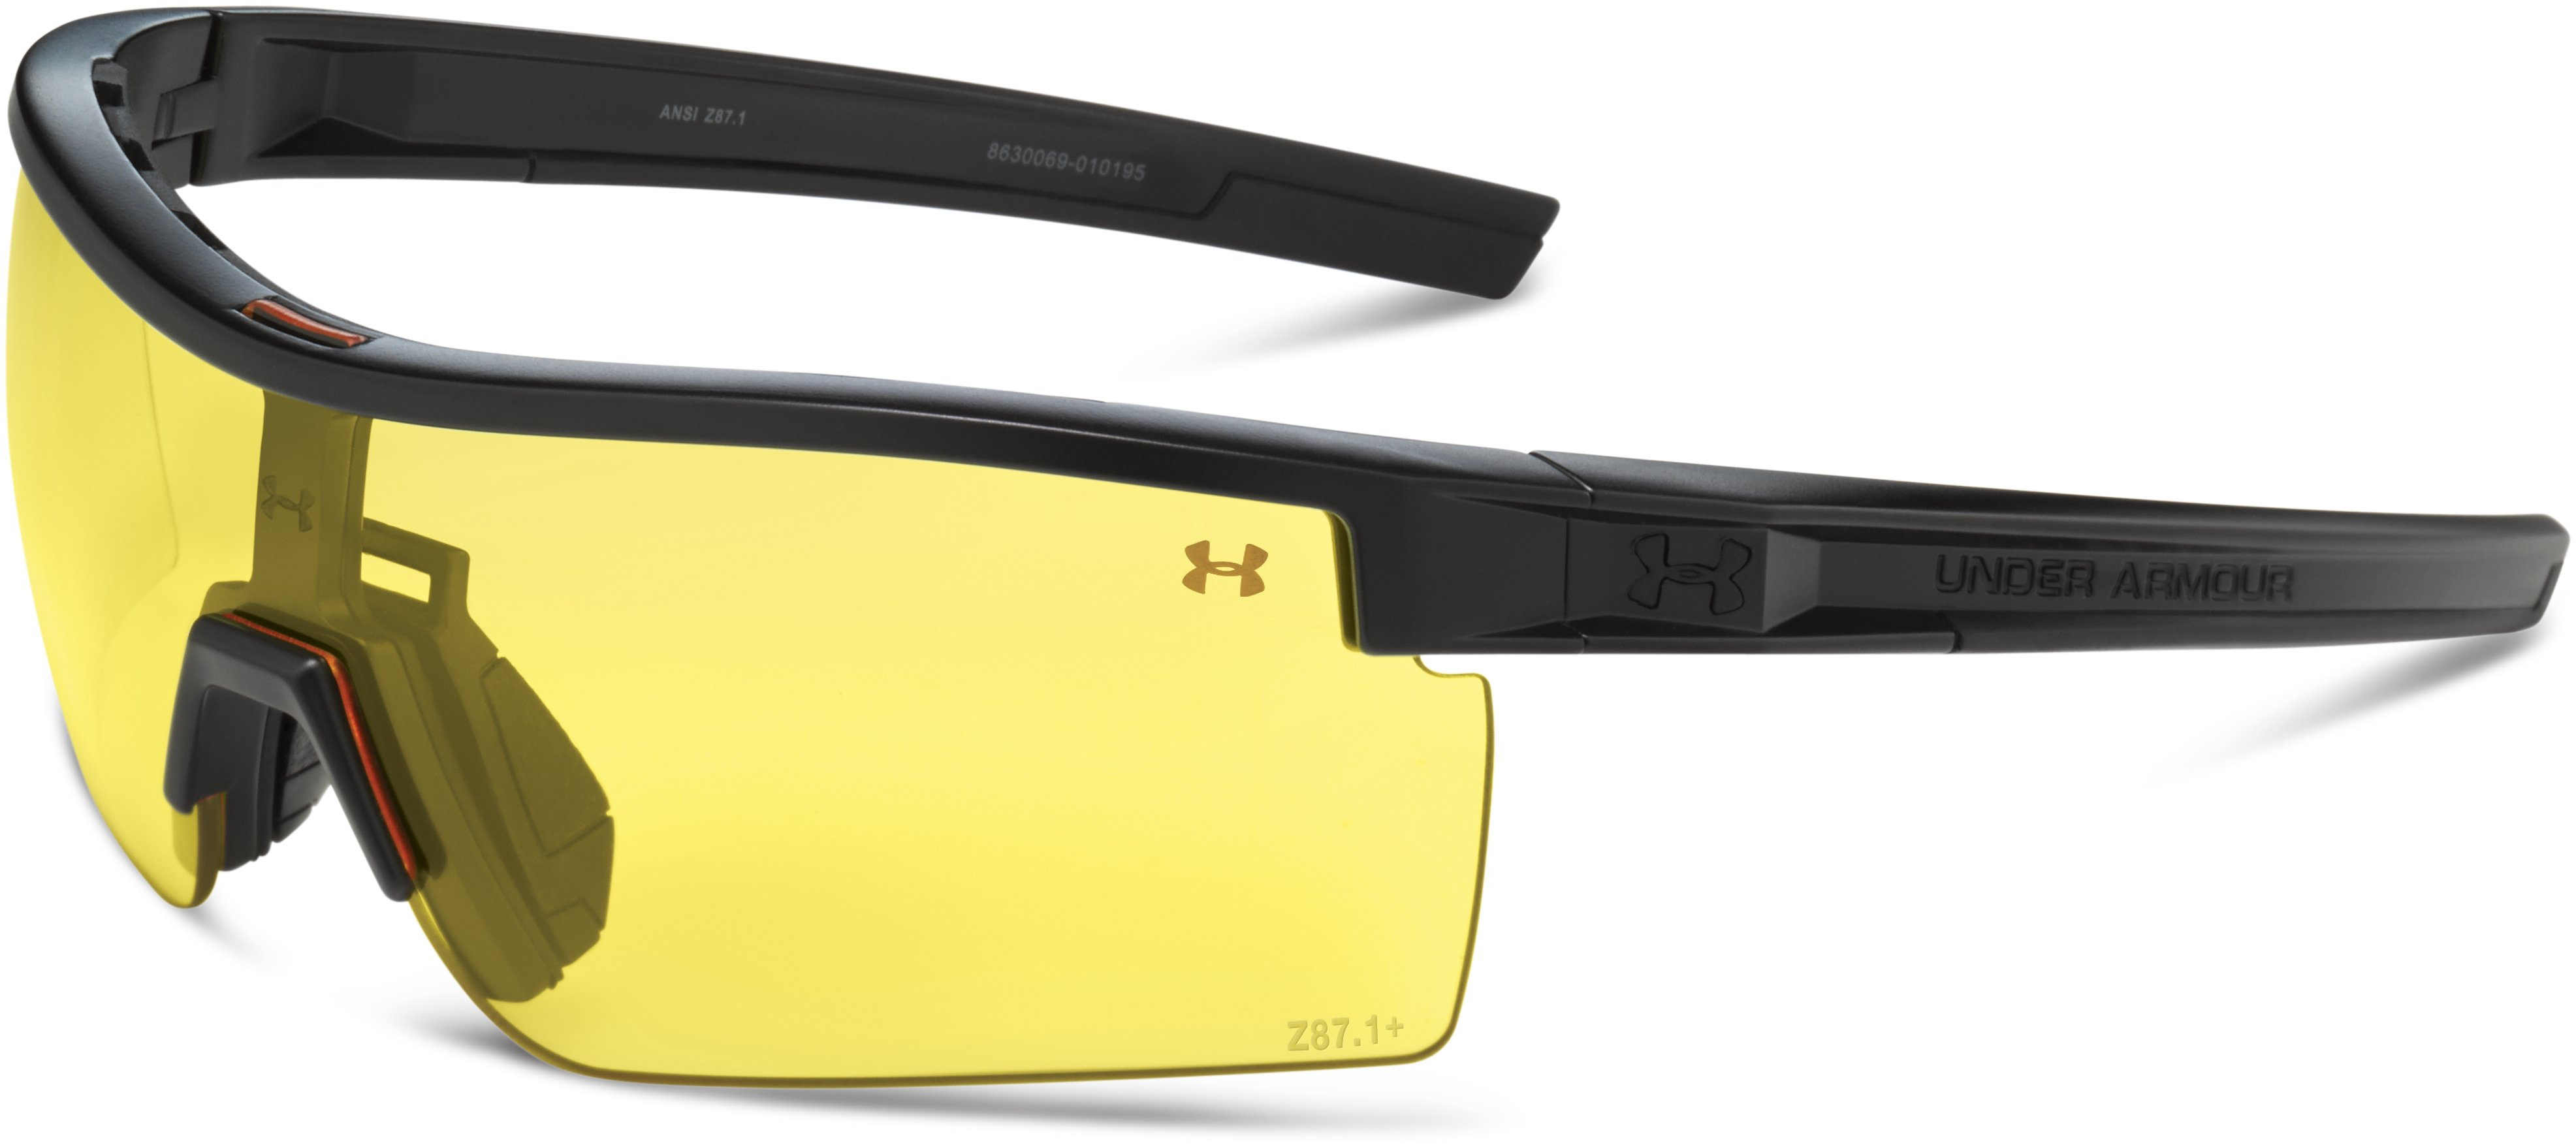 eyewear sunglasses UA Freedom Interchange Tactical Sunglasses Meets & exceeds MIL-PRF-31013 ballistic standards for <strong>eyewear</strong>.